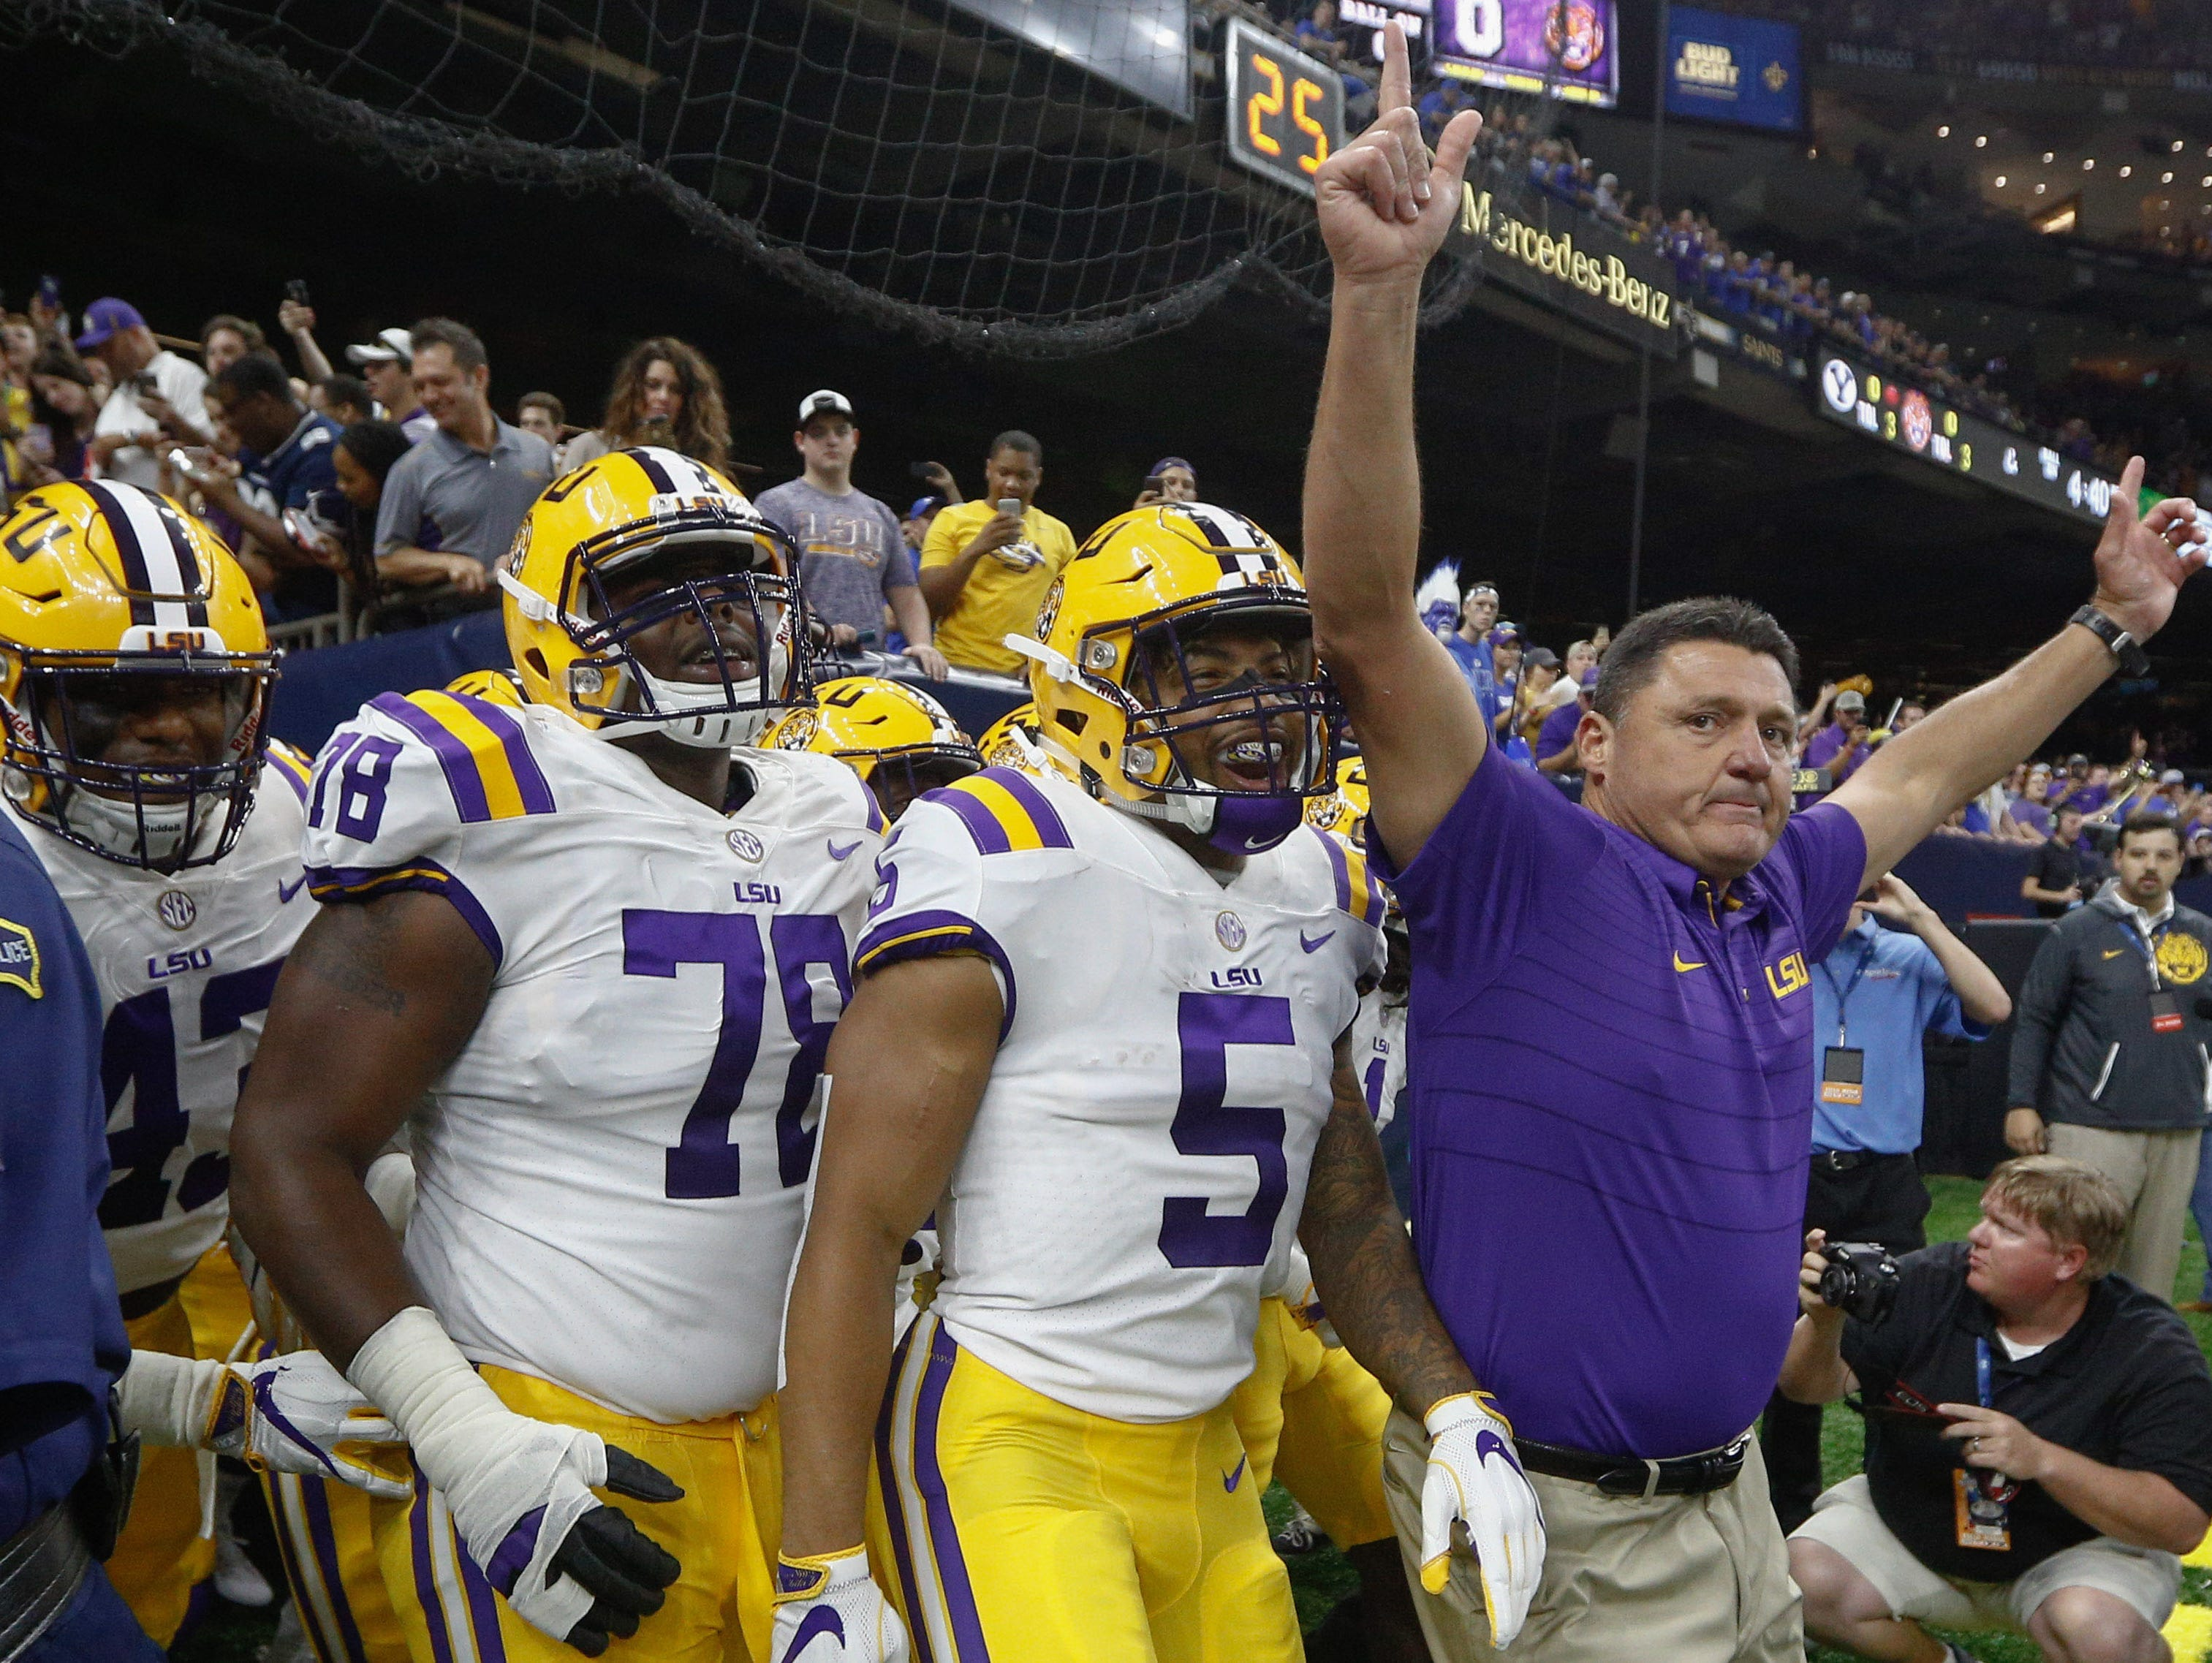 Sep 2, 2017; New Orleans, LA, USA; LSU Tigers head coach Ed Orgeron leads his team onto the field before the AdvoCare Texas Kickoff game against the Brigham Young Cougars at the Mercedes-Benz Superdome. Mandatory Credit: Derick E. Hingle-USA TODAY Sports